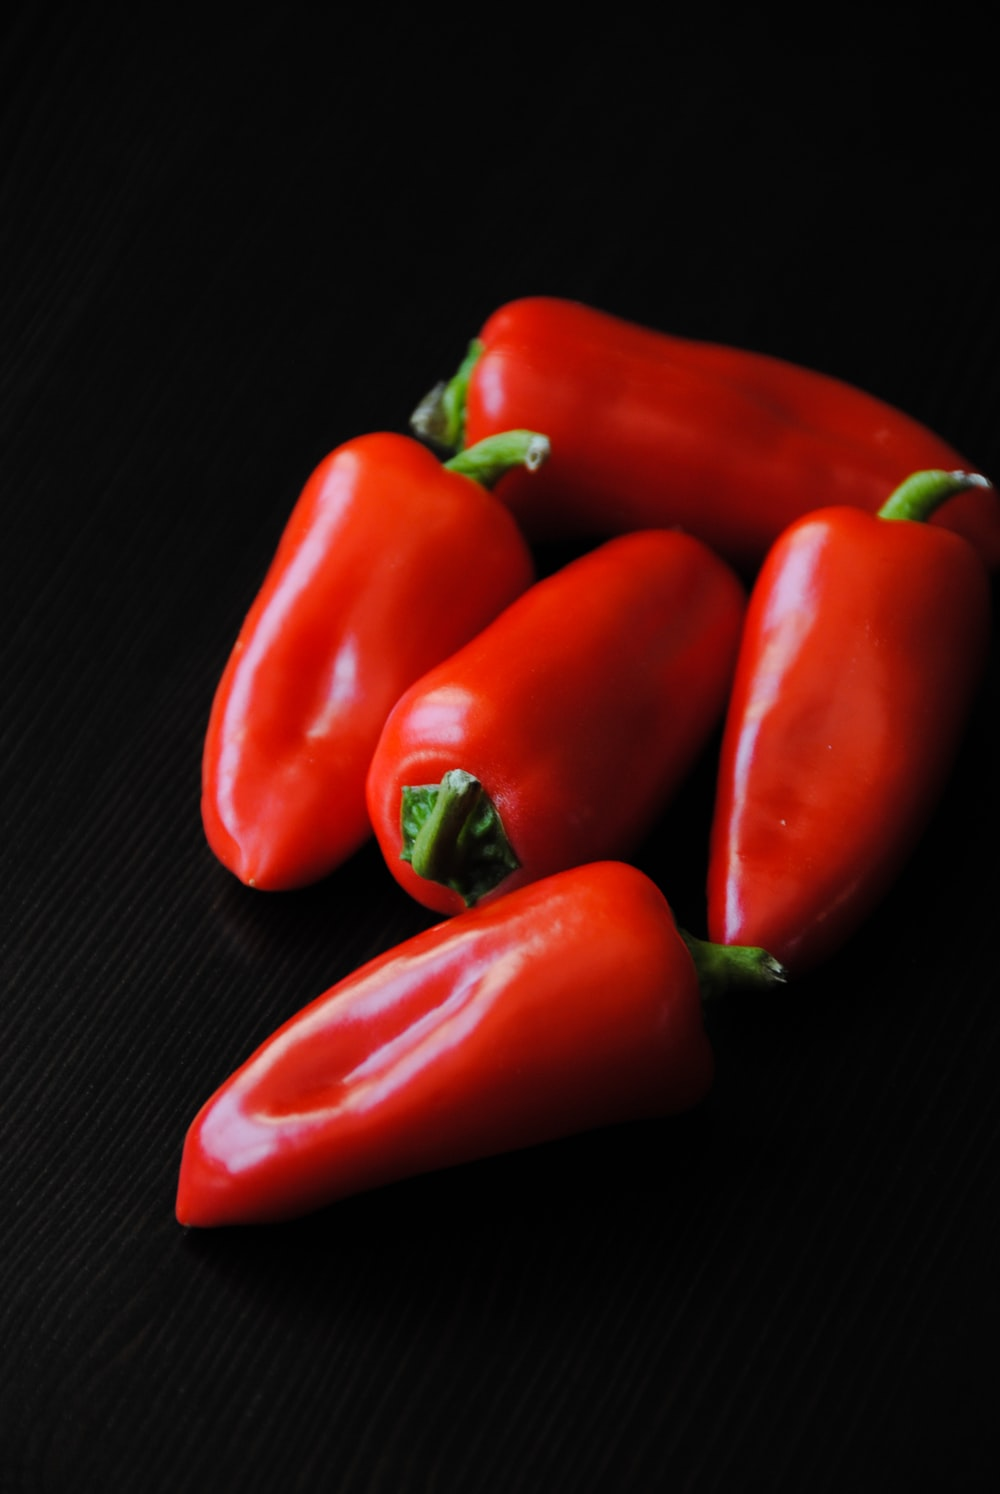 five red bell peppers on black textile